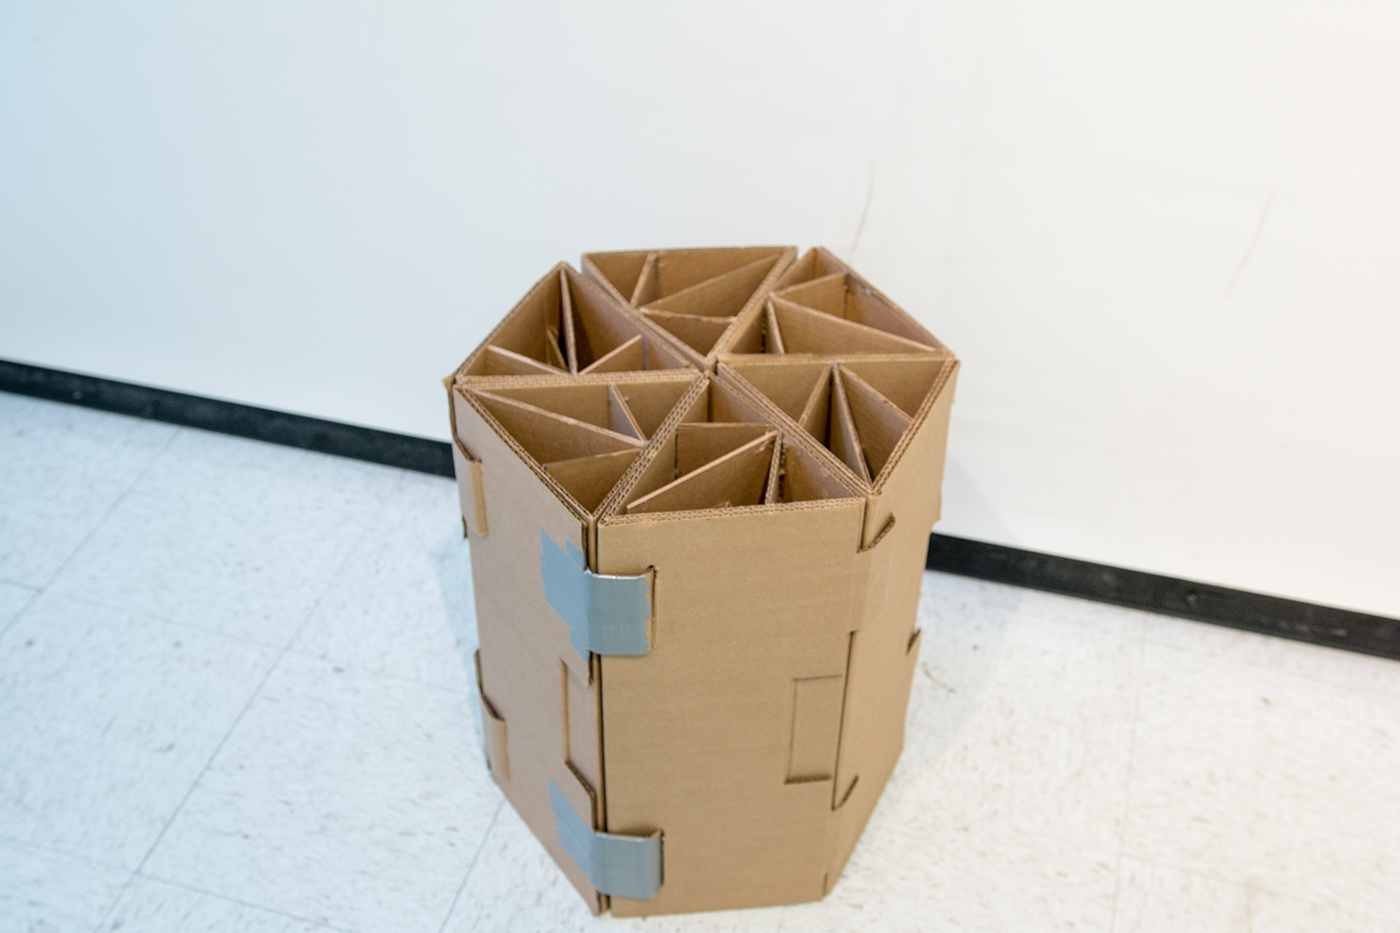 How To Make A Cardboard Chair Modular Reconfigurable Cardboard 39chair 39 On Behance